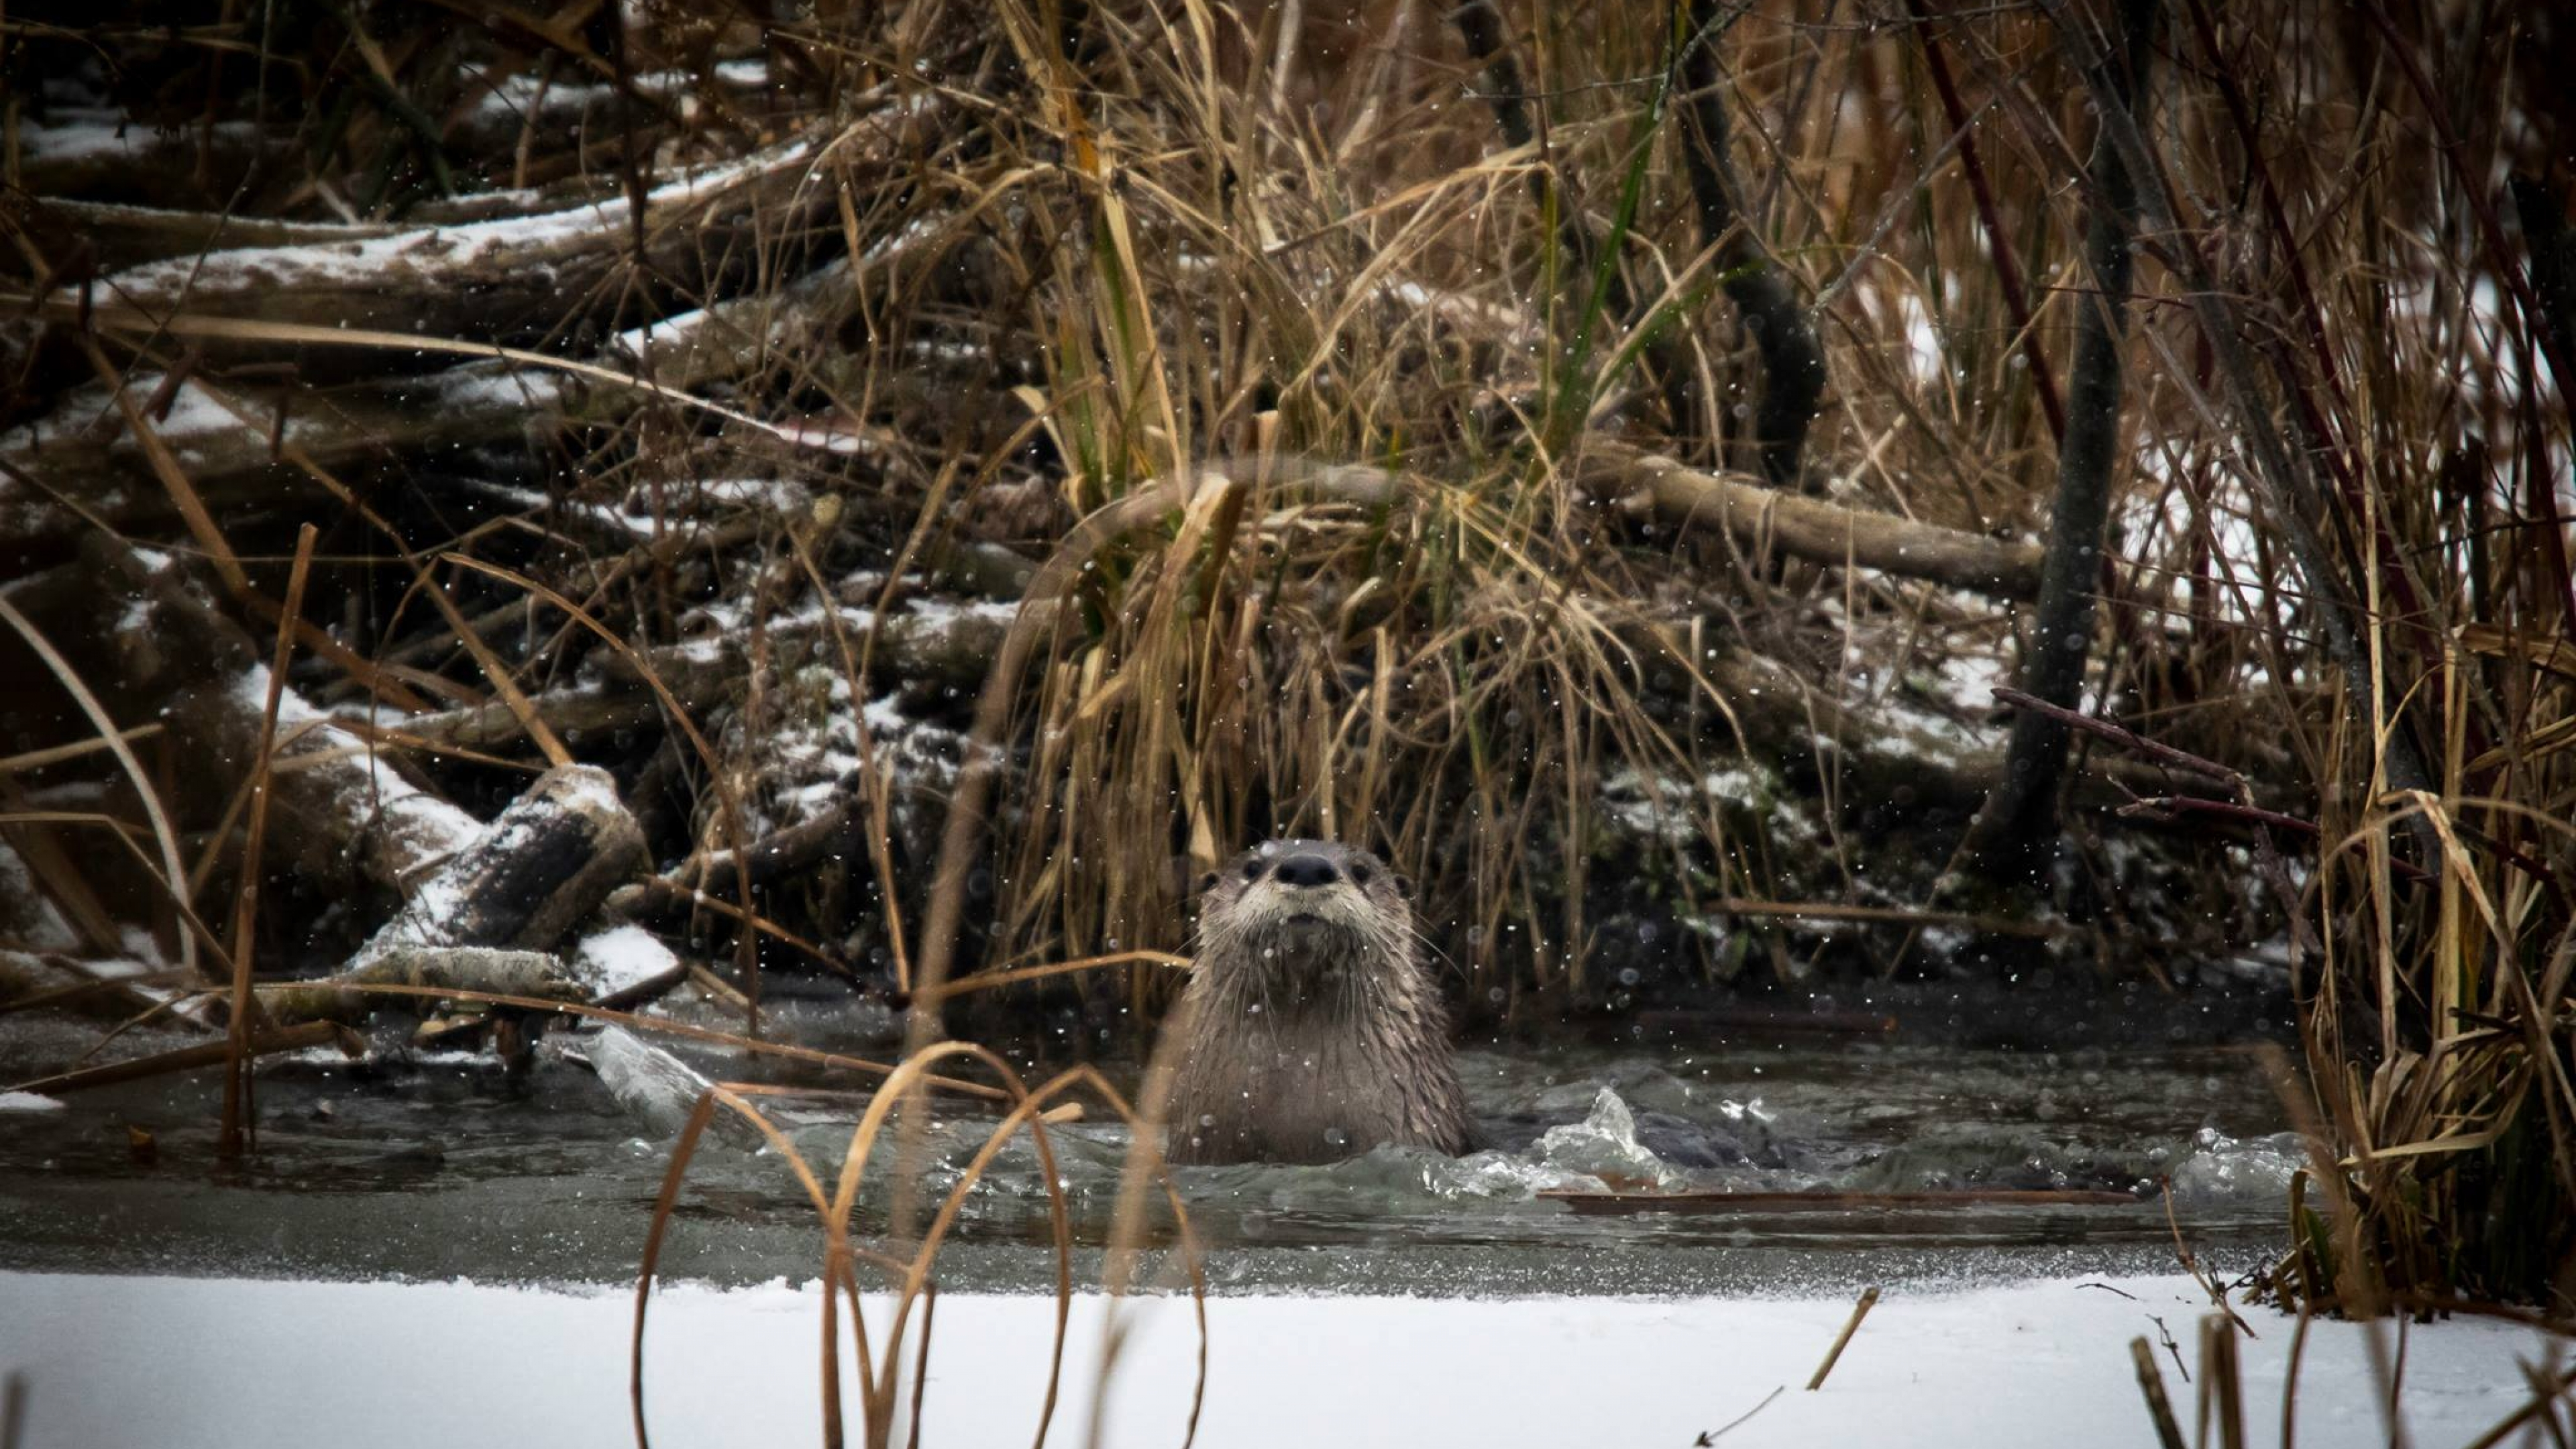 Otter in a river in winter